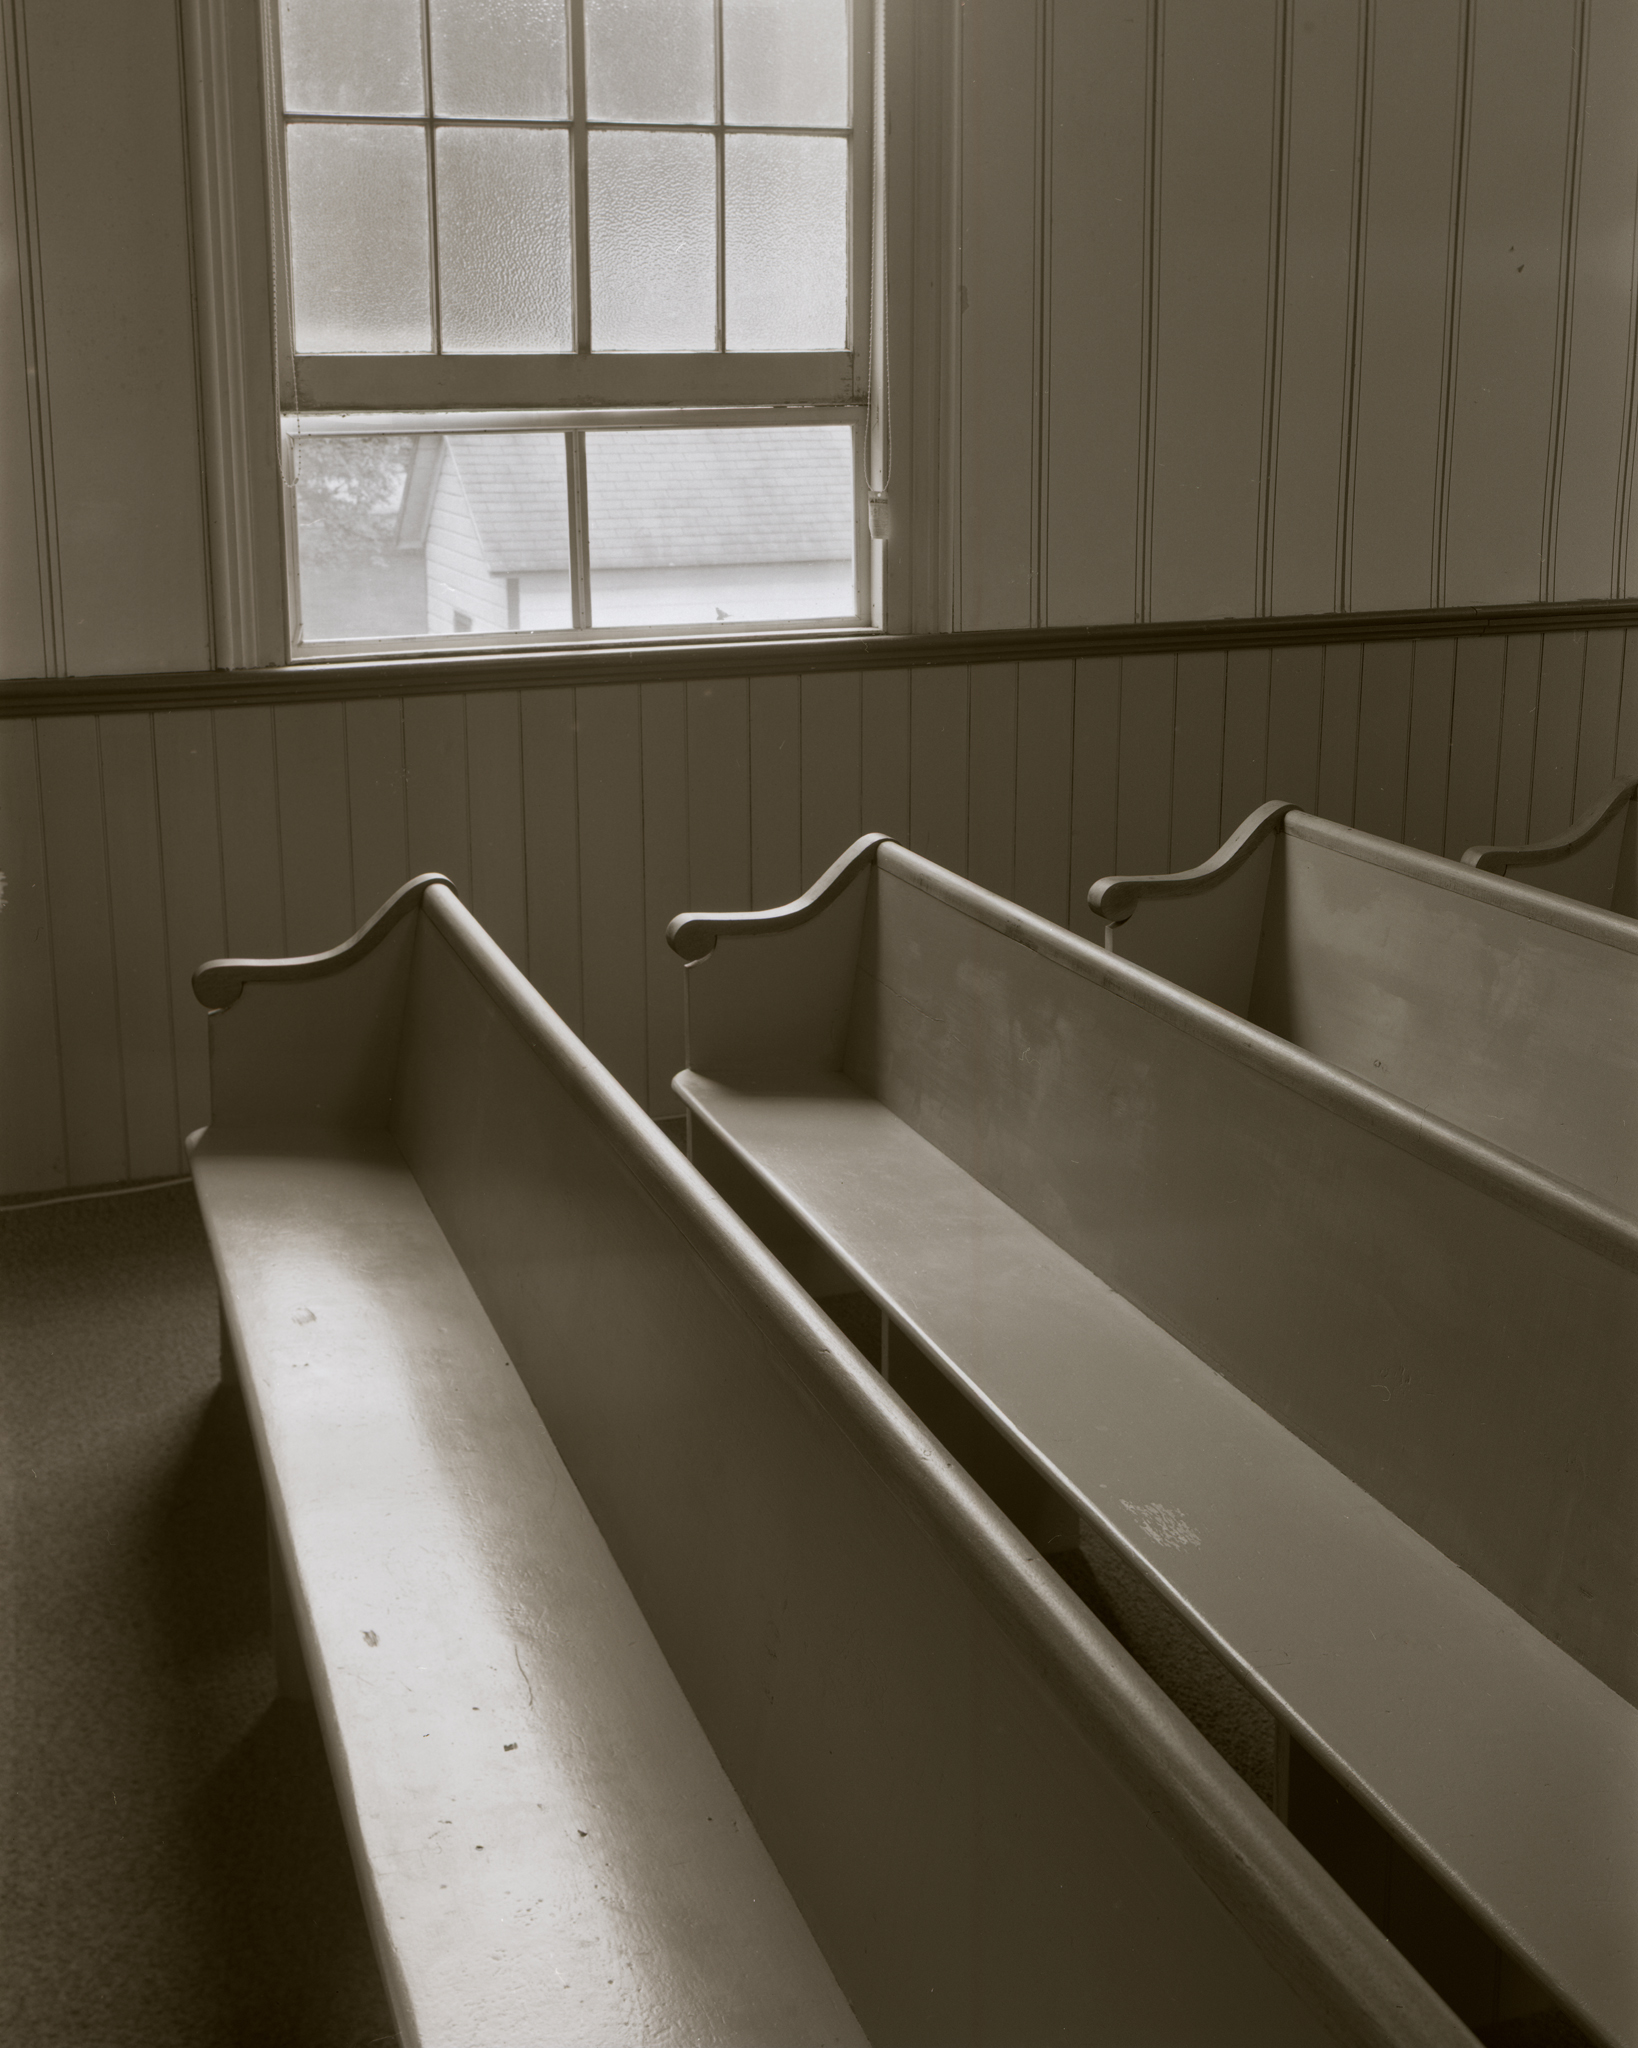 Walpack_Methodist_Church_2018-09-23_Intrepid_MK3_4x5_120mm Symmar_HP5_400_at_400_PyrocatHD_1_1_100_church_pews_and_window_001.jpg